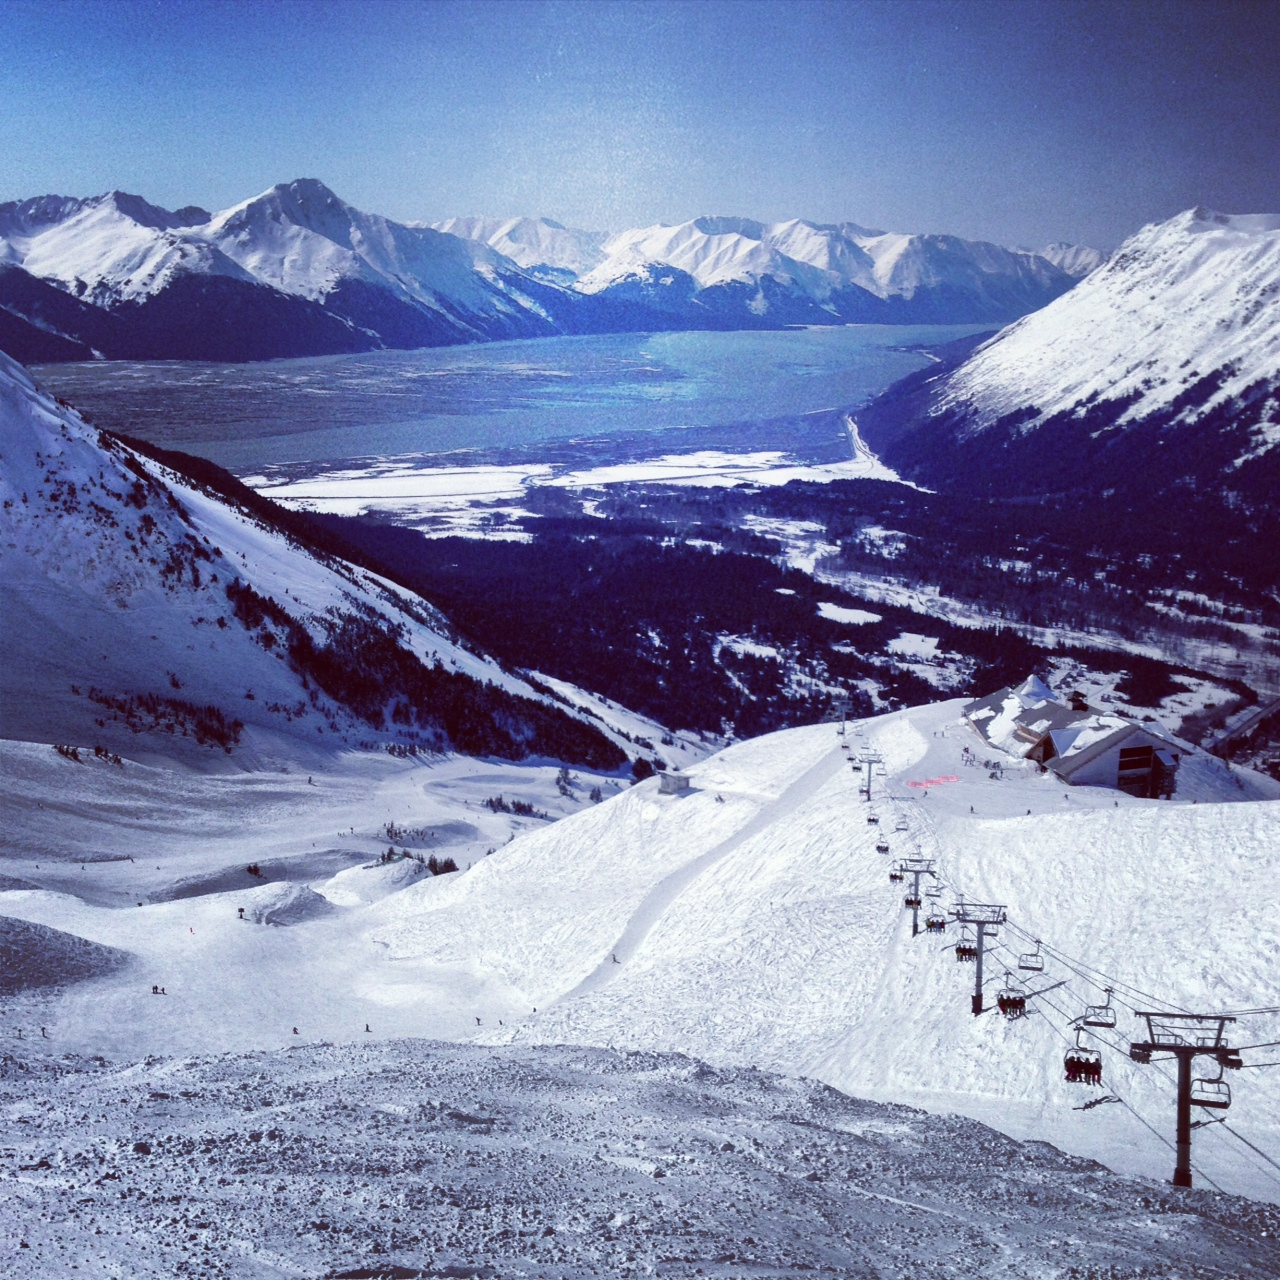 I alpine skied a day at Alyeska with my parents.  It was awesome out there!